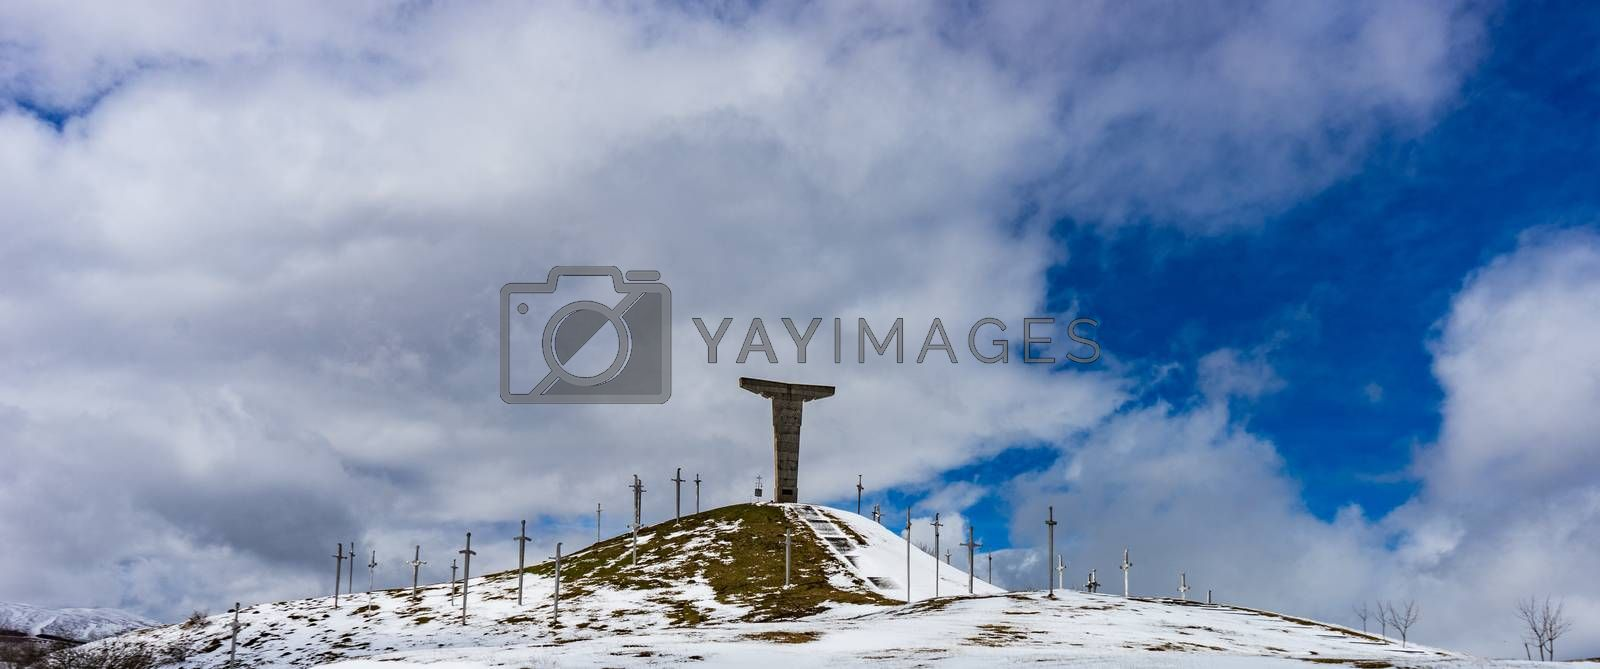 03 APRIL 2019, GEORGIA, TBILISI, Famous Didgori battle monument with giant swards and sculptures of soldiers close to Tbilisi in Caucasus mountain range